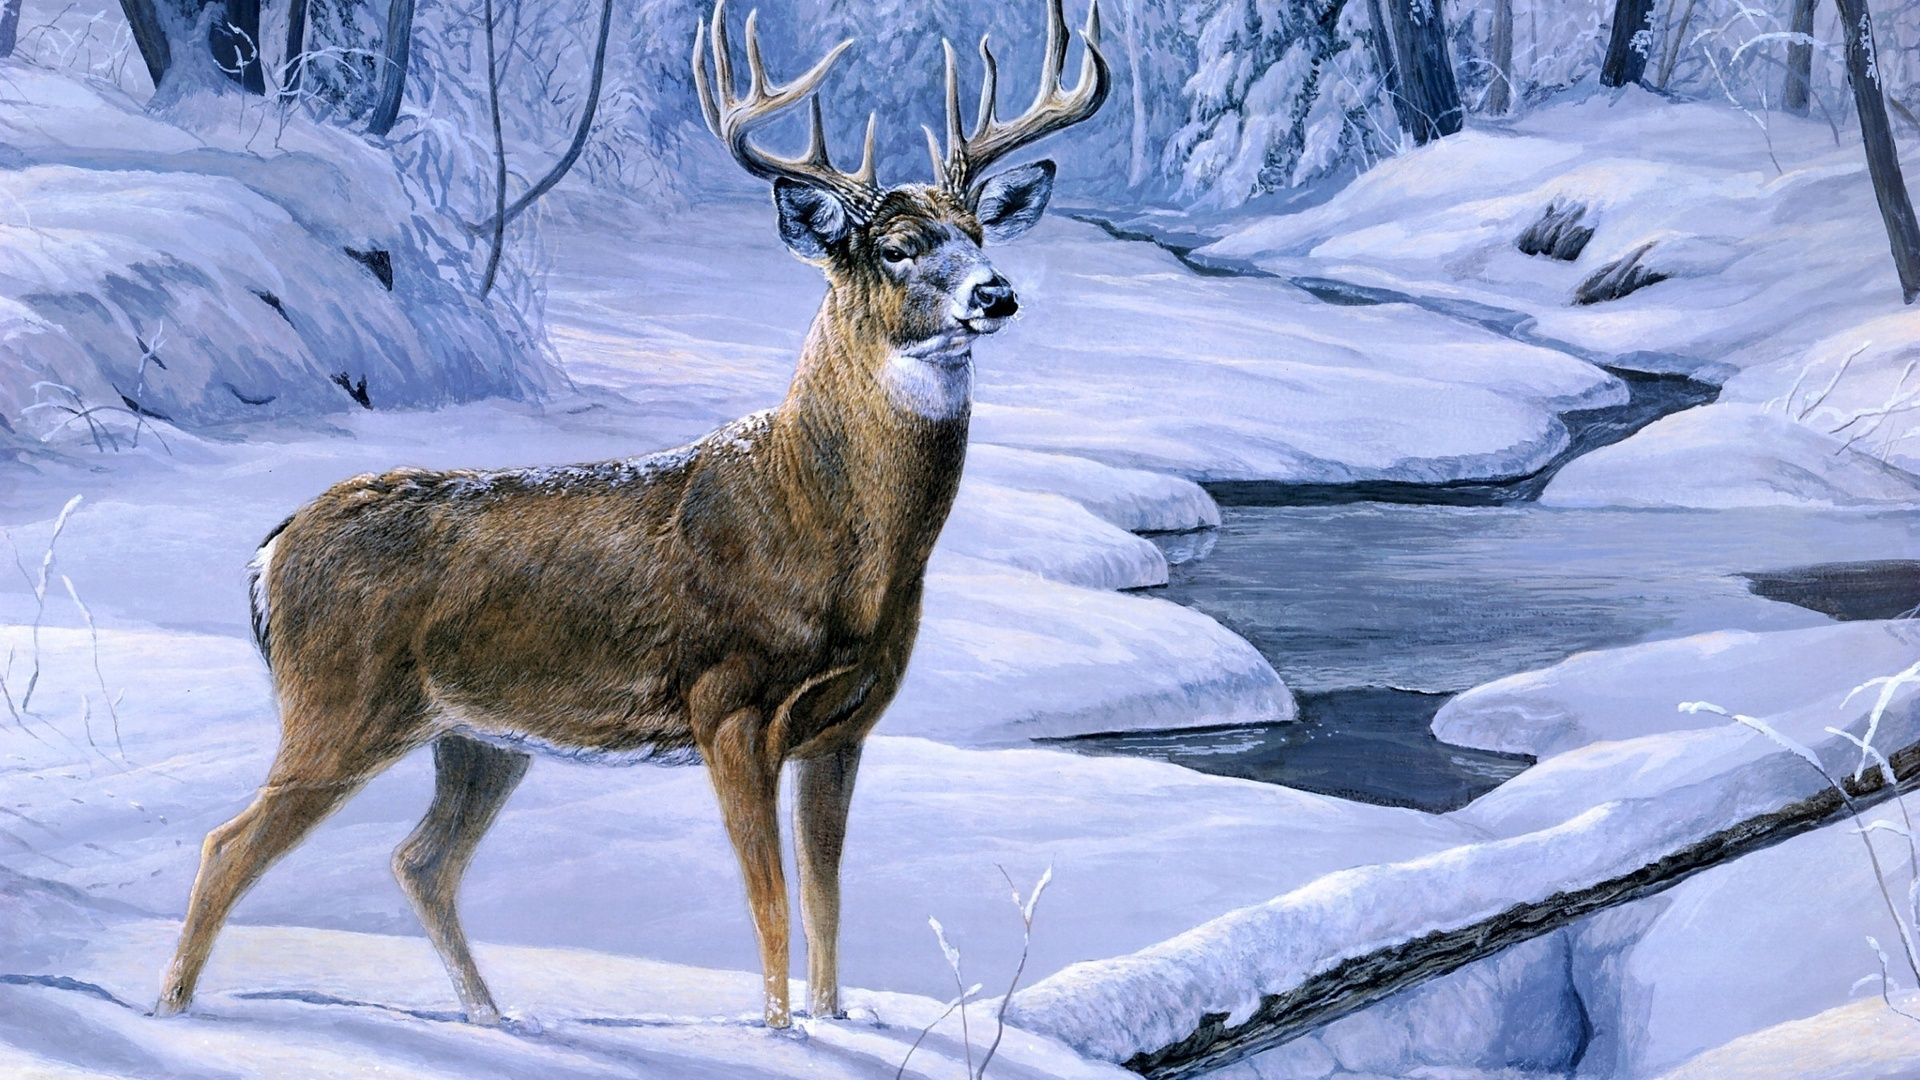 Fantasy Wallpapers HD and Widescreen  Painting Art Deer wallpaper 1920x1080